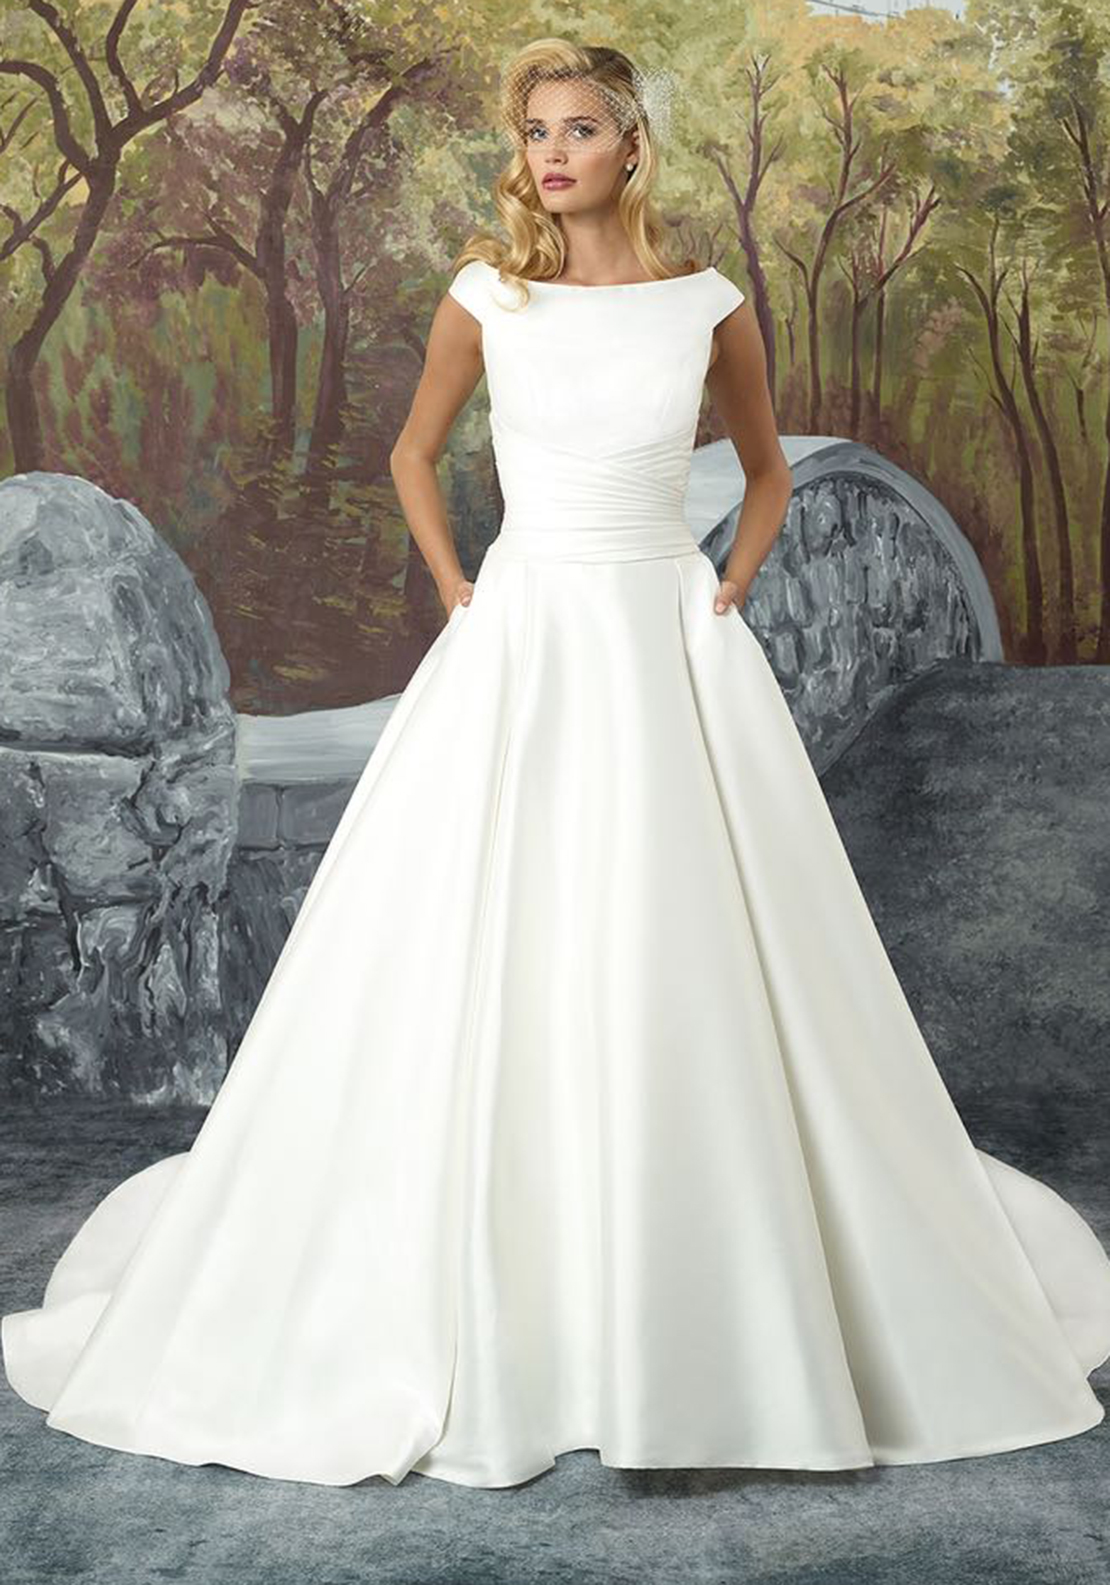 Justin Alexander 8929 Wedding Dress